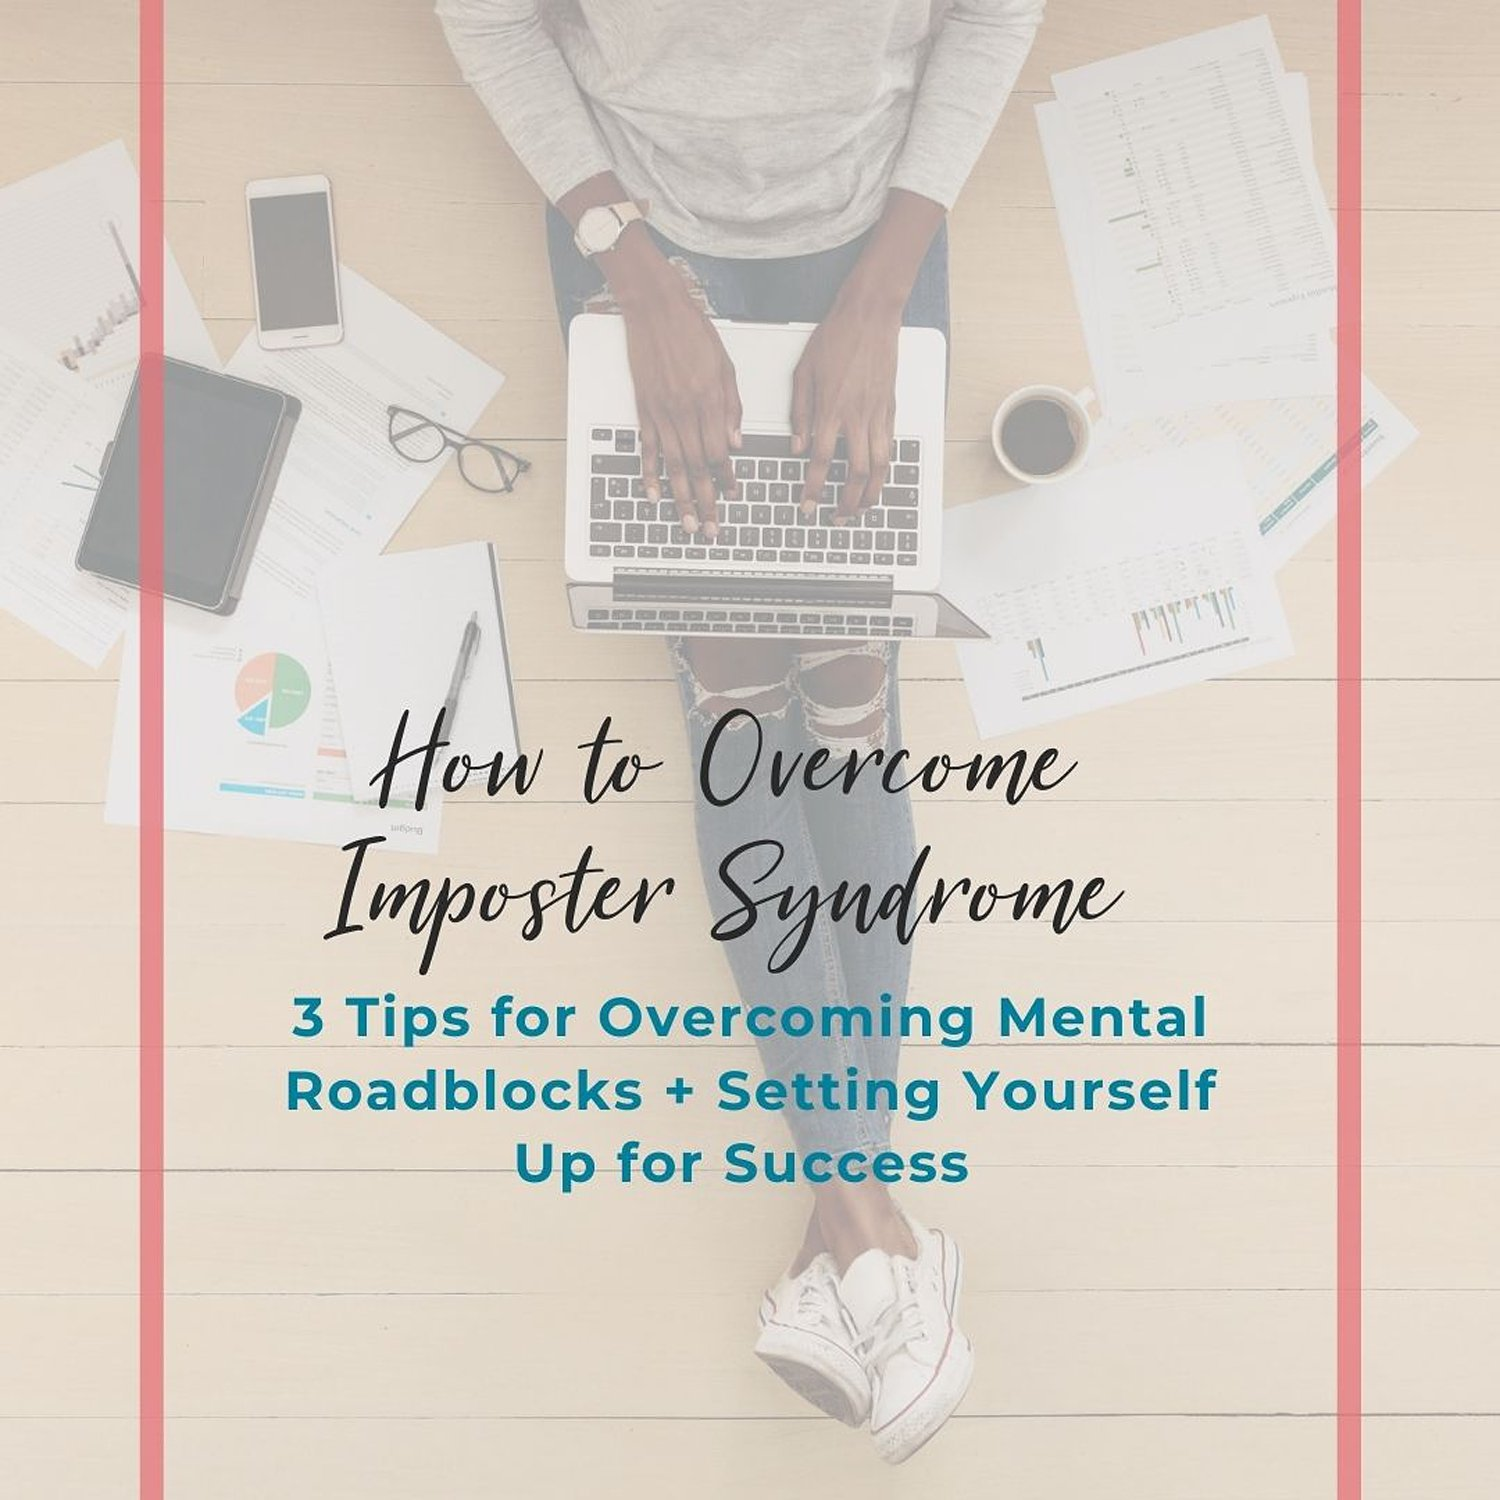 3 tips for overcoming imposter syndrome and creating a mindset for success.